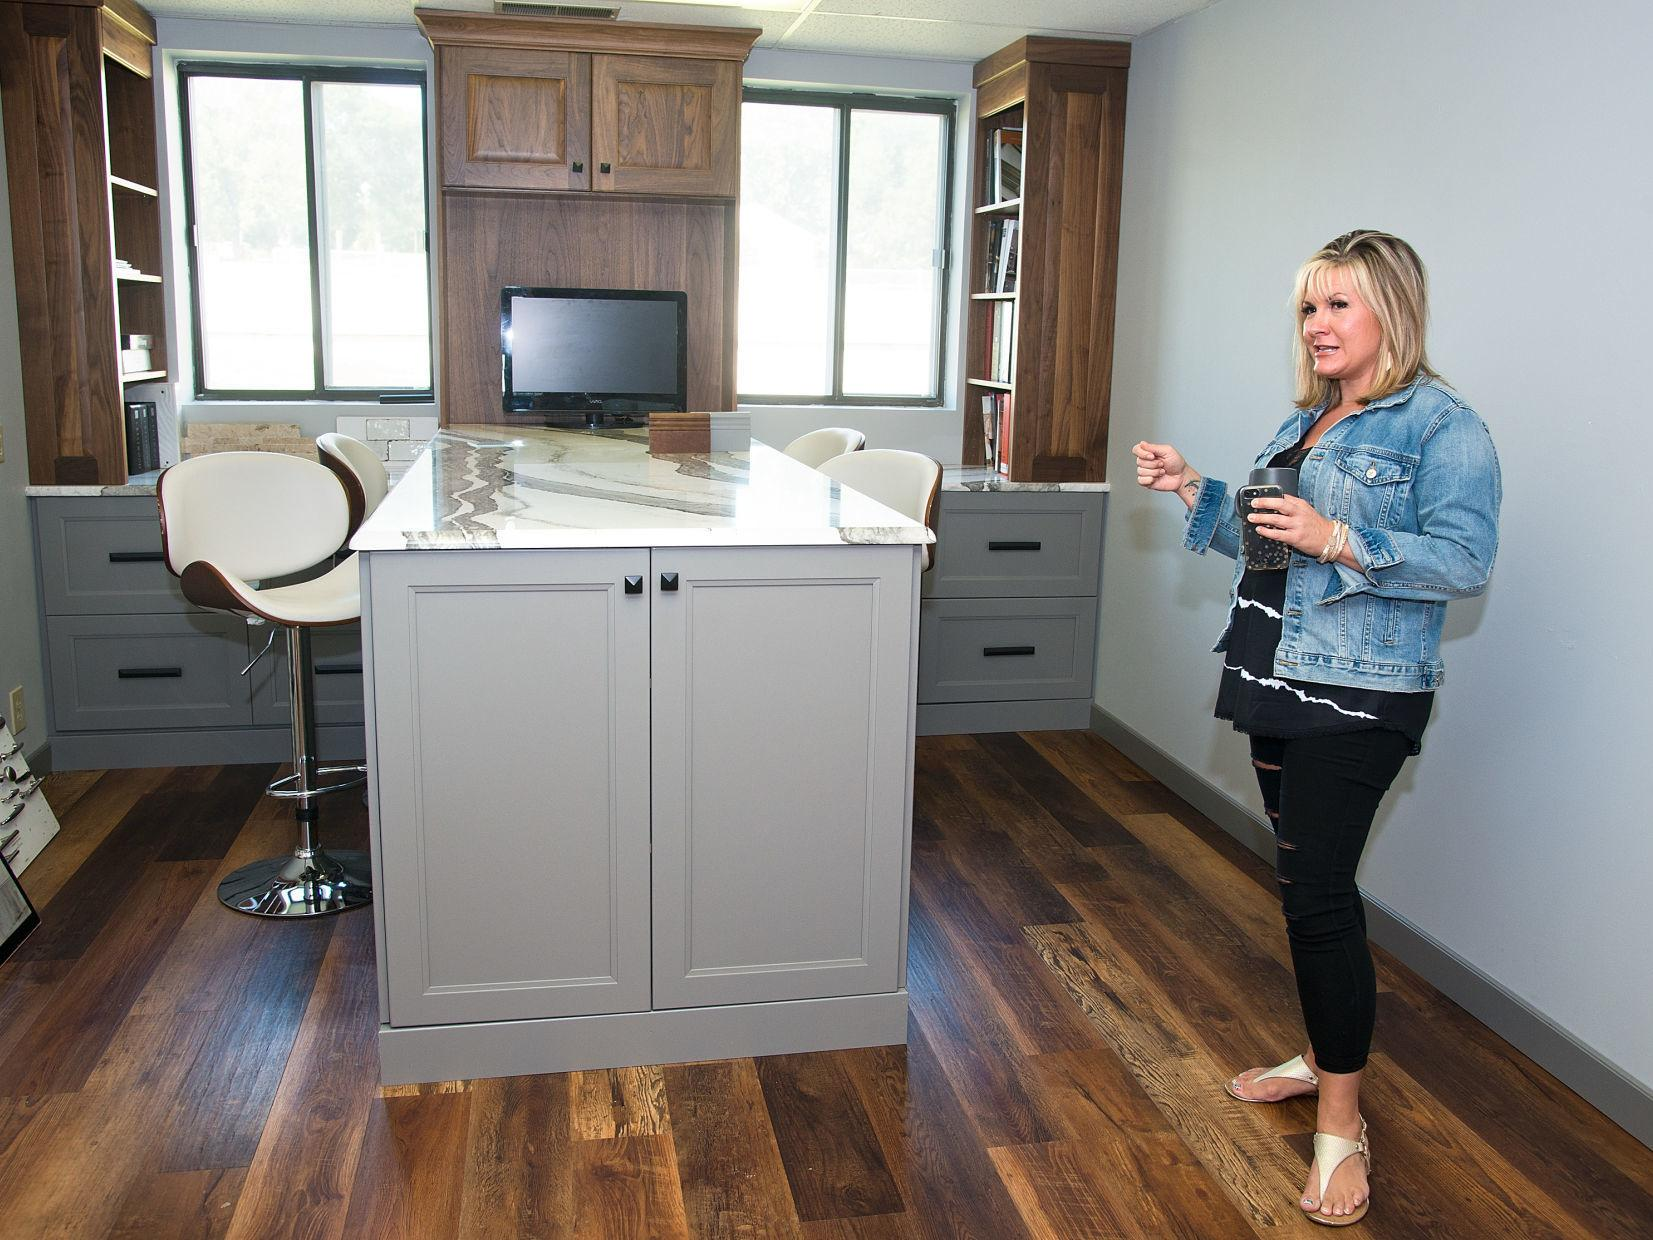 sioux city designer gives tips for staying on budget with a